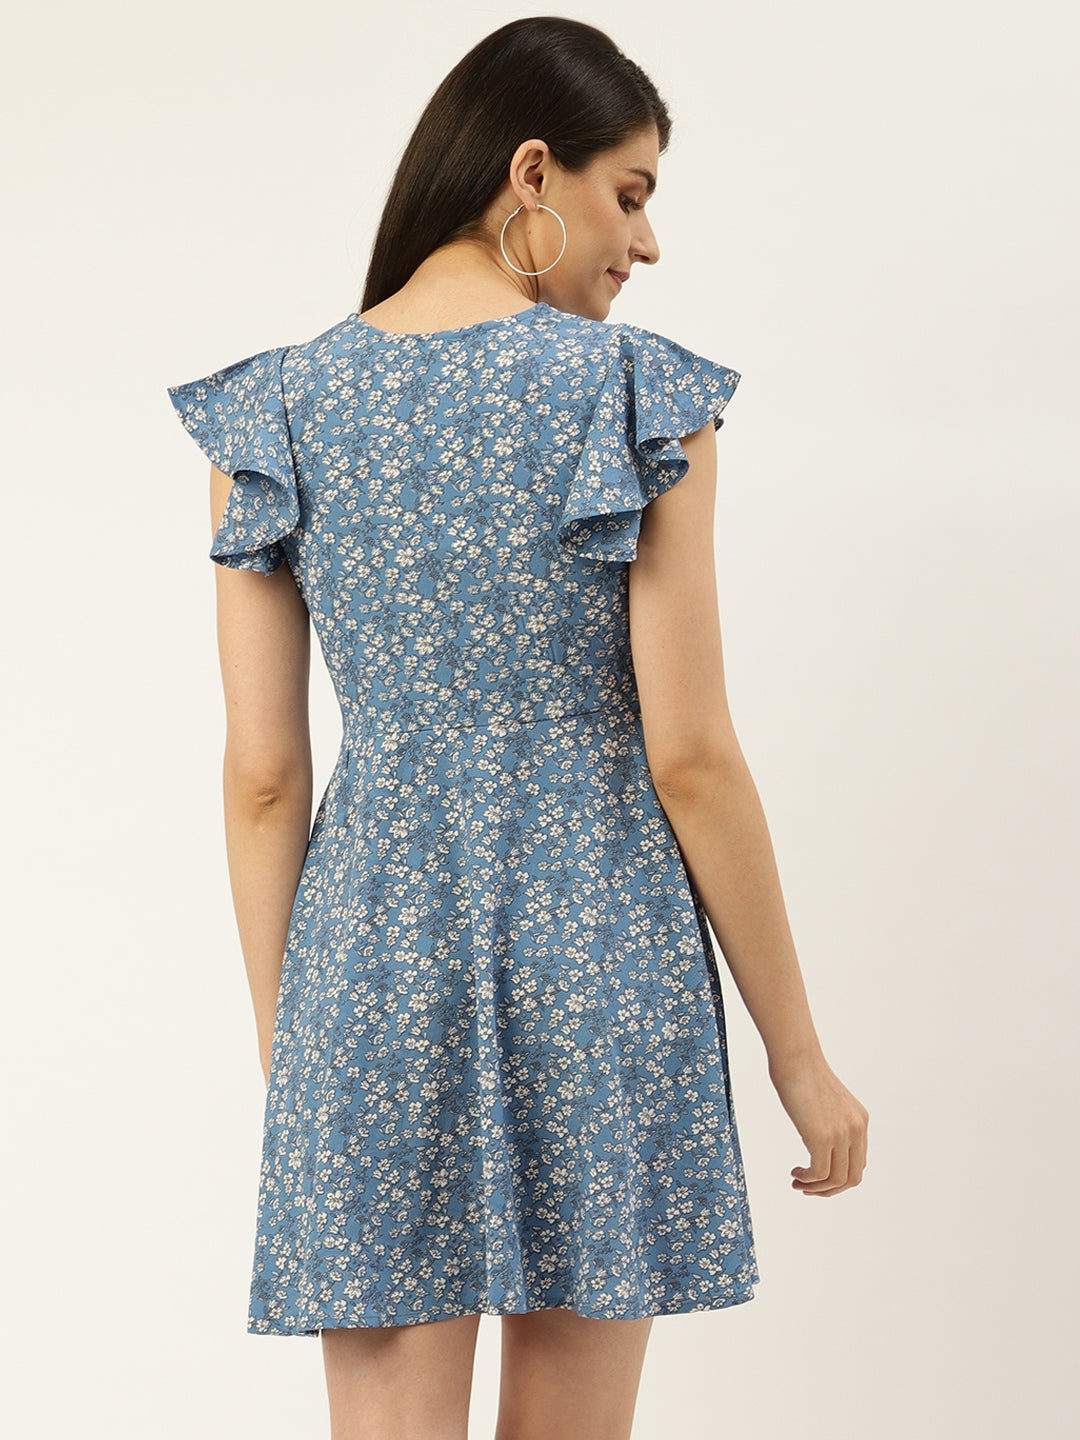 Blue Ditsy Floral Dress